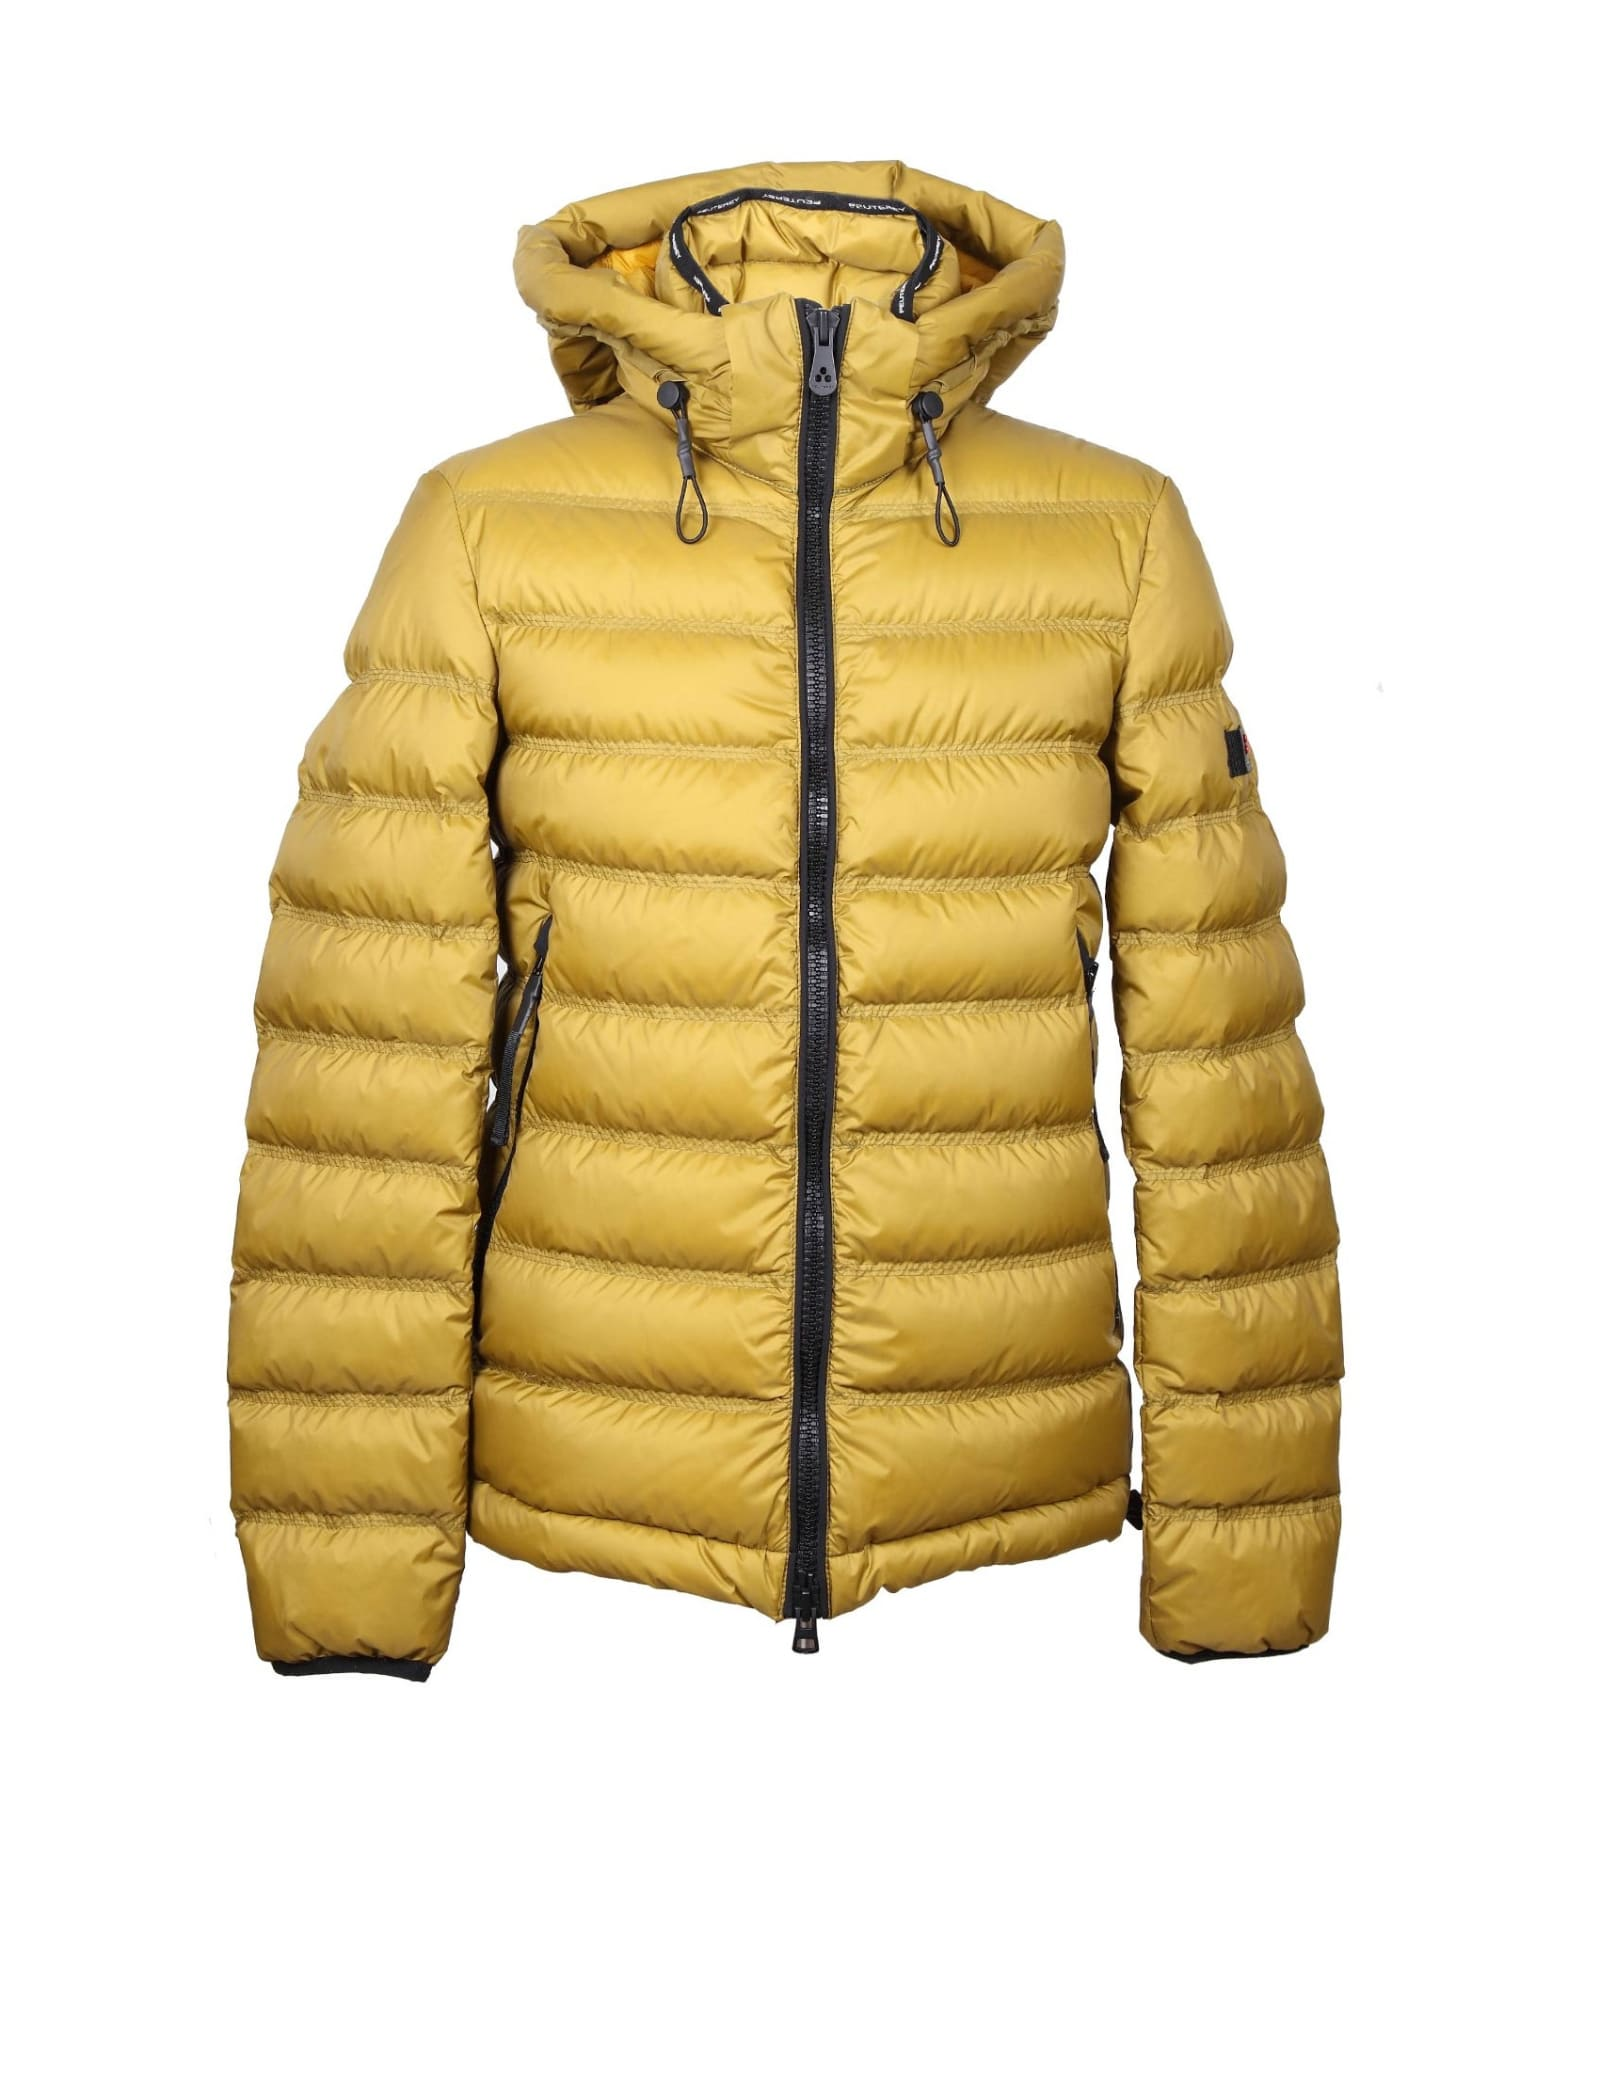 Peuterey Downs BOGGS DOWN JACKET IN GREEN COLOR NYLON